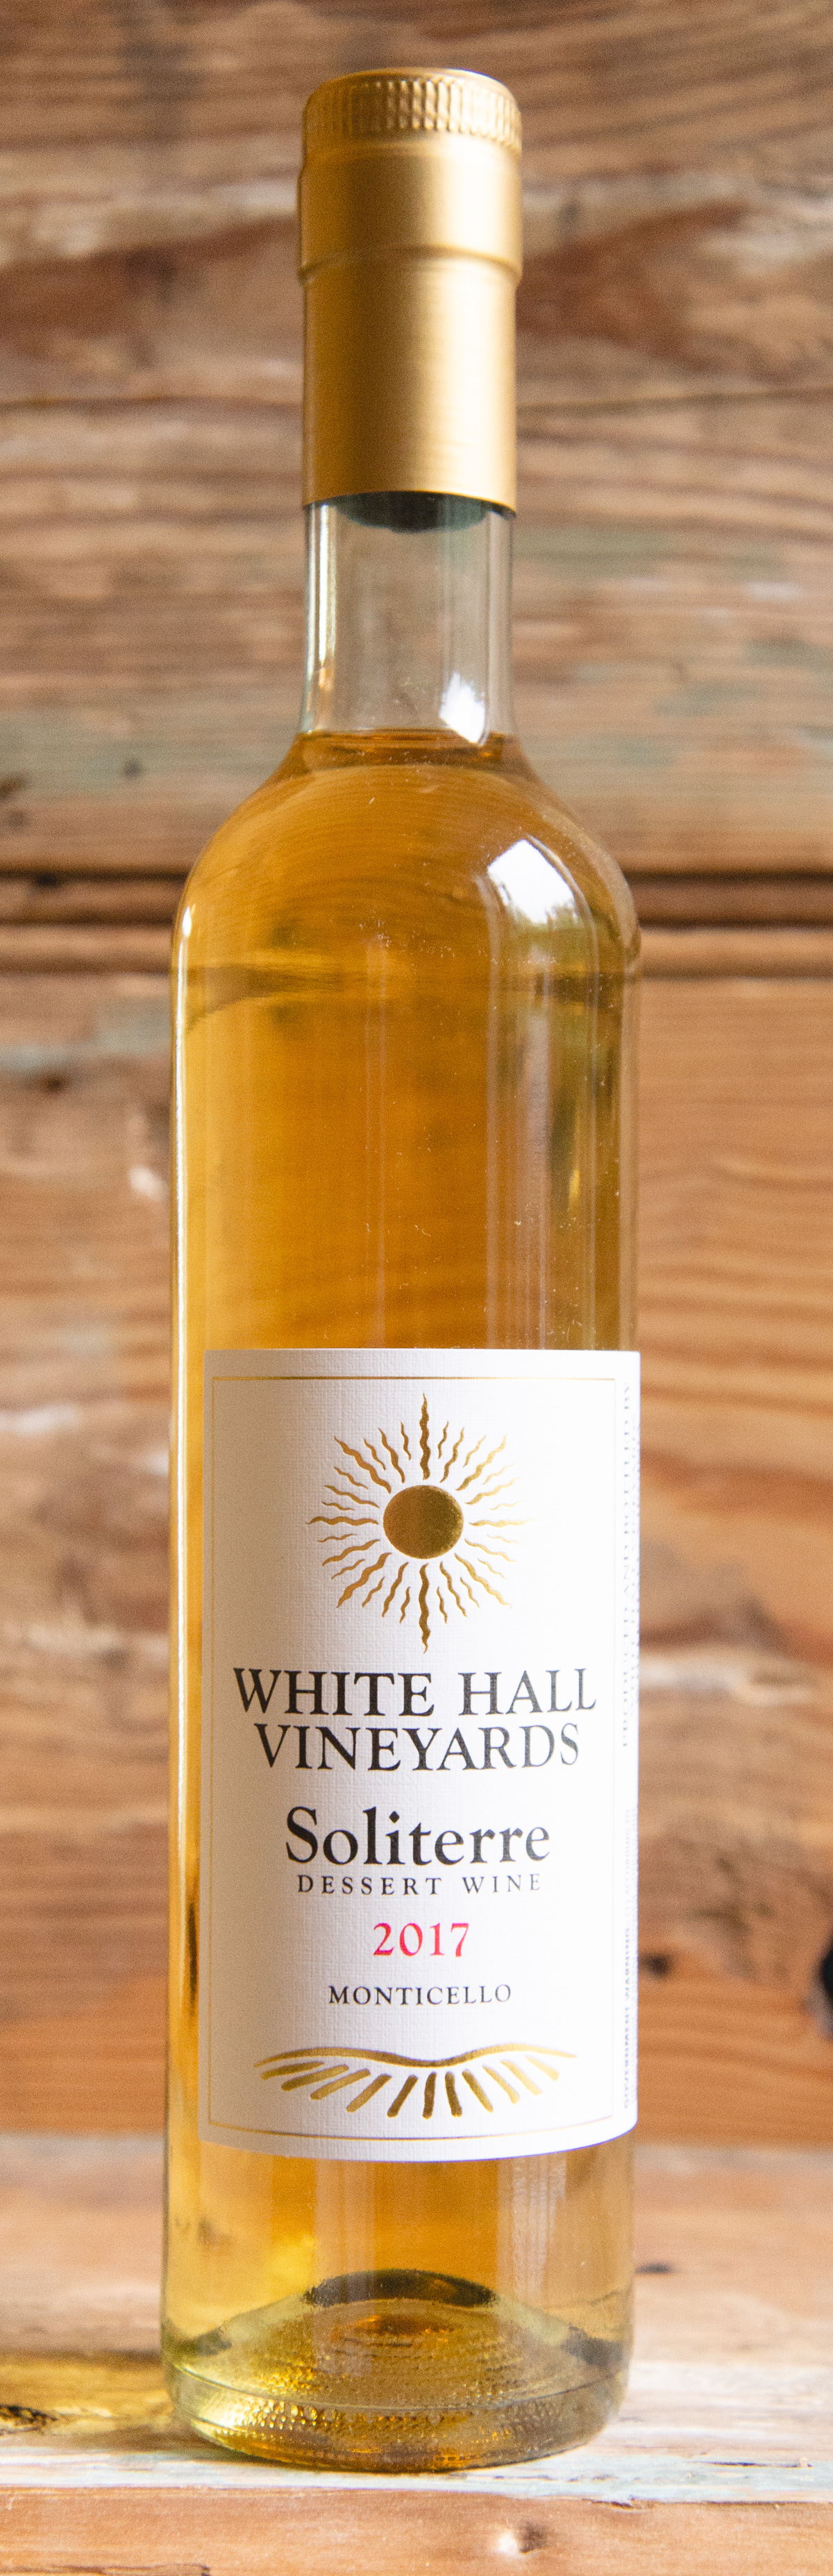 White Hall Soliterre 2017 - Origin: MonticelloRetail: $24.95   Sale: $22.45White Hall Vineyards is a farm winery located just 13 miles from historic Charlottesville, Virginia. This lush and balanced dessert wine maintains its acidity beautifully. Like drinking liquid honey, this wine will pair wonderfully with fruit desserts or foie gras.100% Petit Manseng